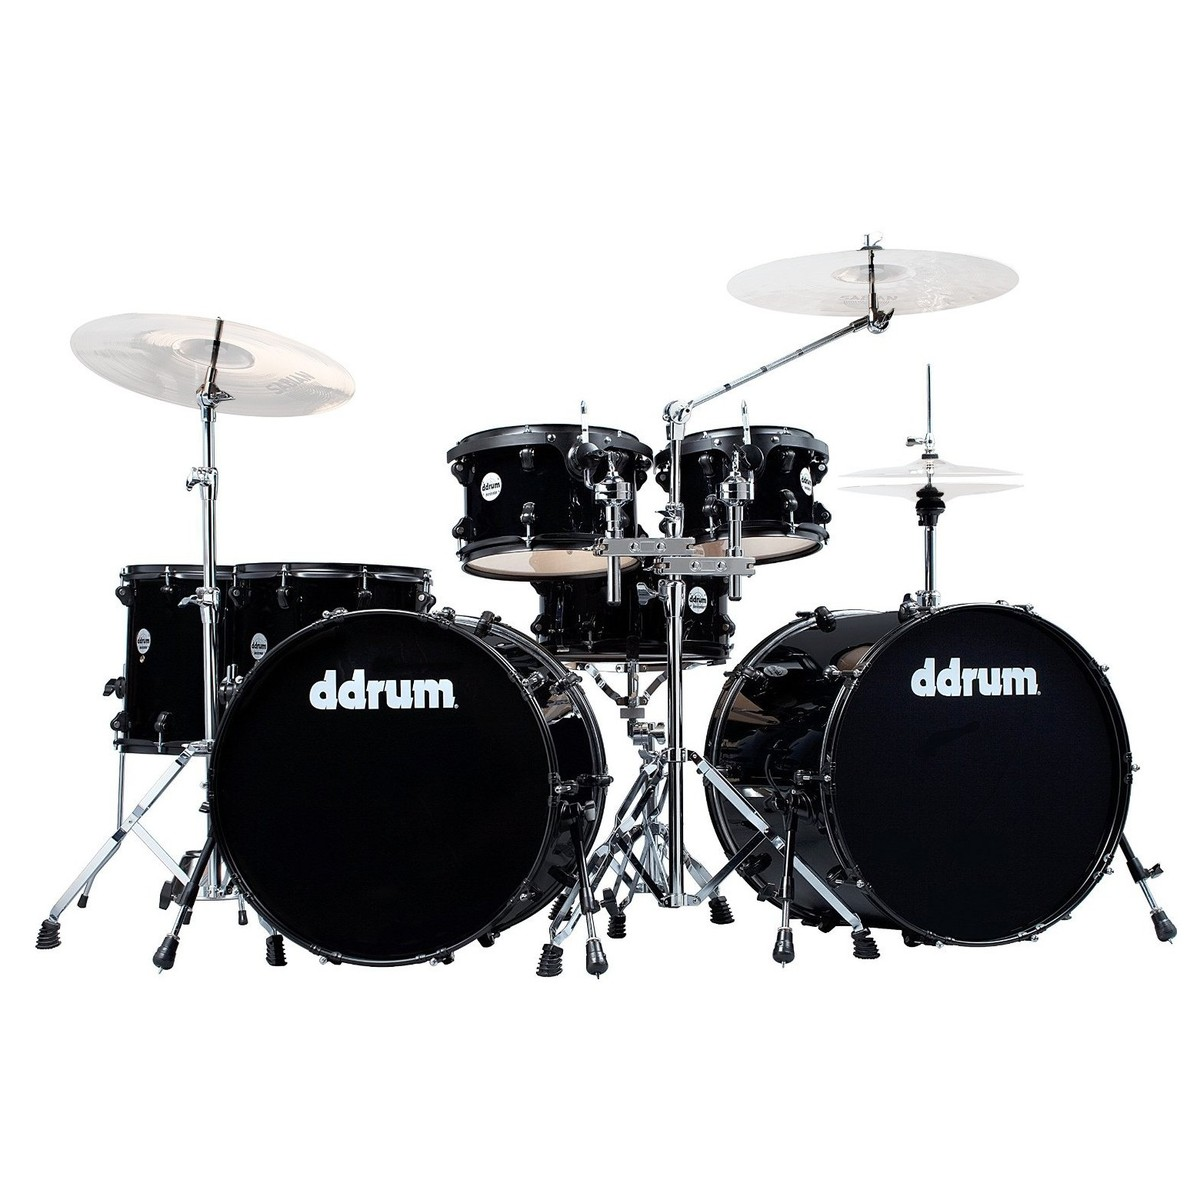 ddrum journeyman 7pc double bass drum kit w hardware